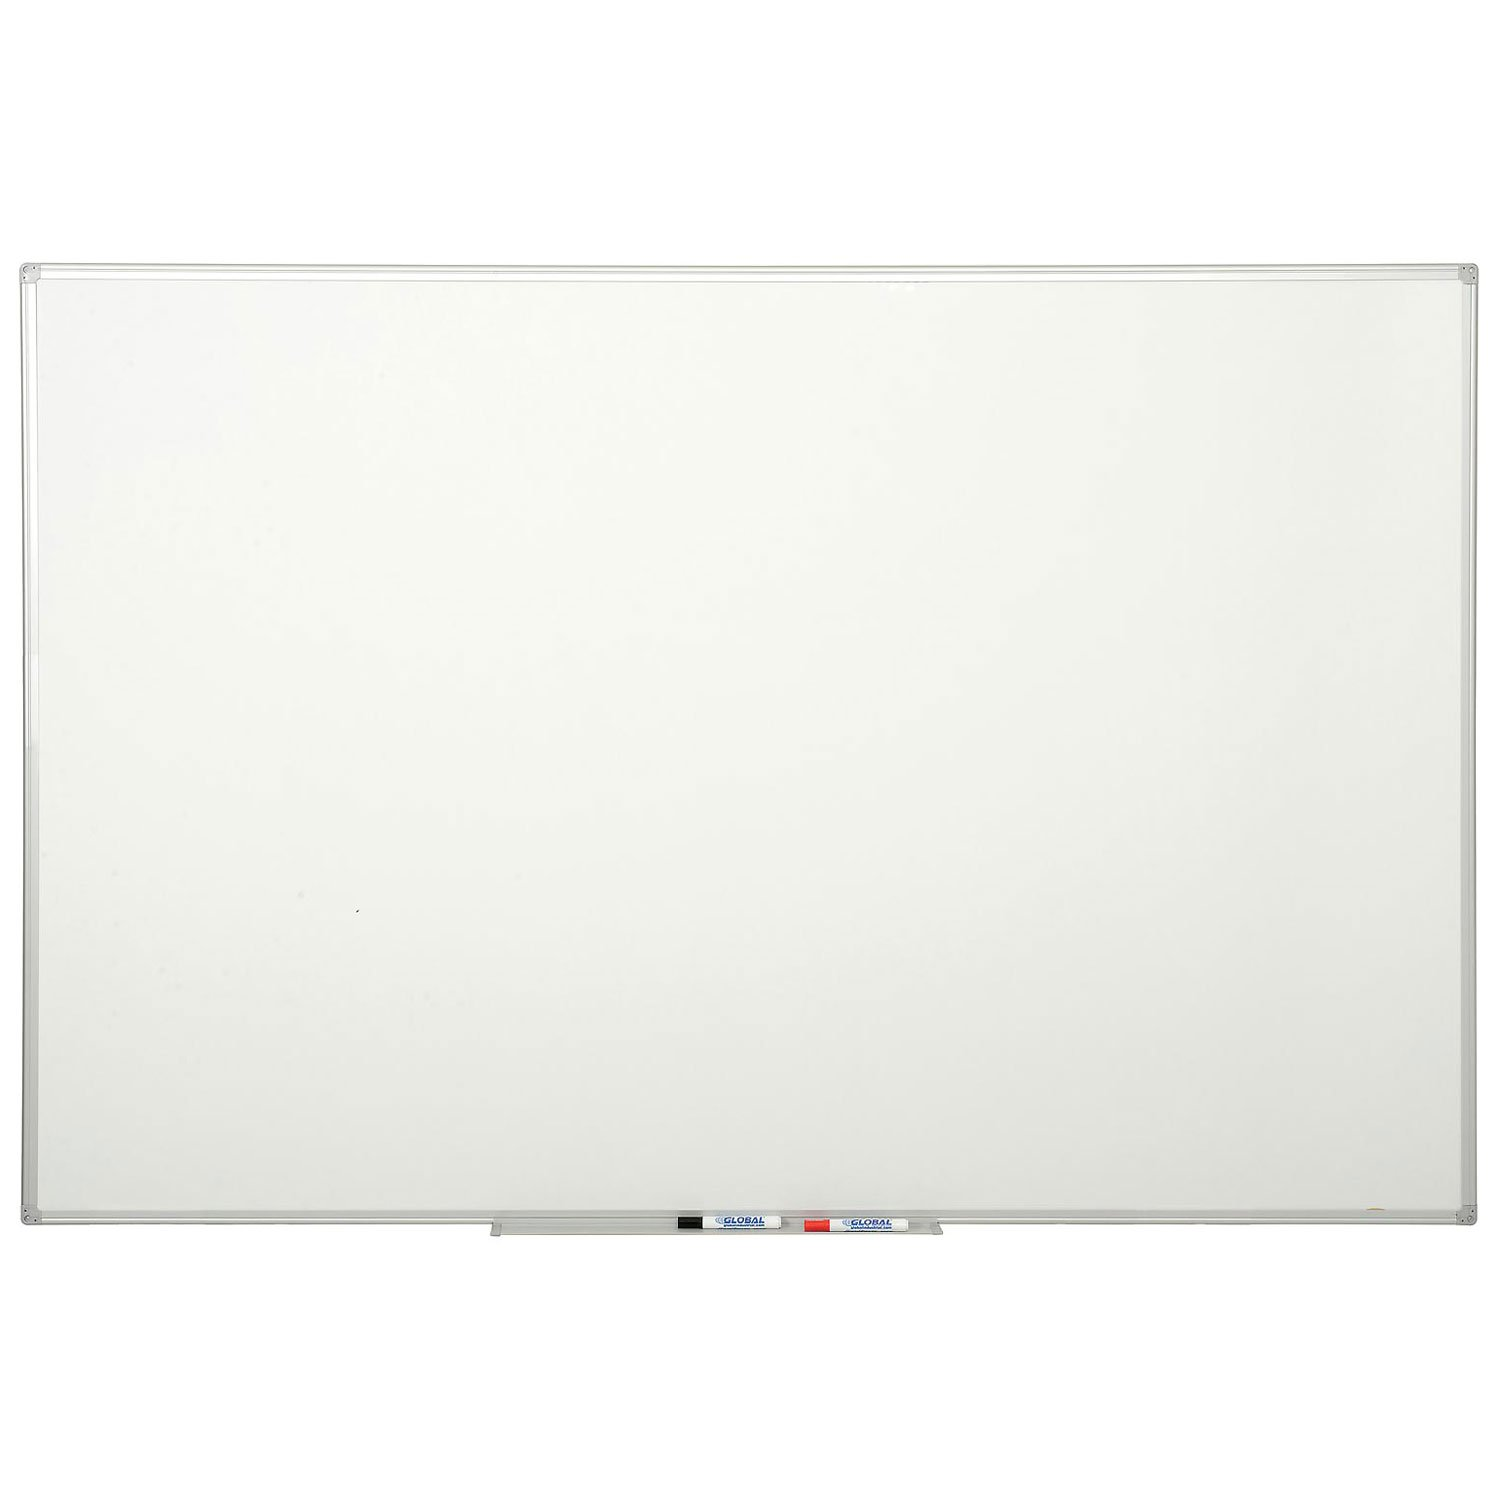 Double Sided Dry Erase Whiteboard - 72 x 48 - Melamine by Bi-Silque Visual Communication Products Inc